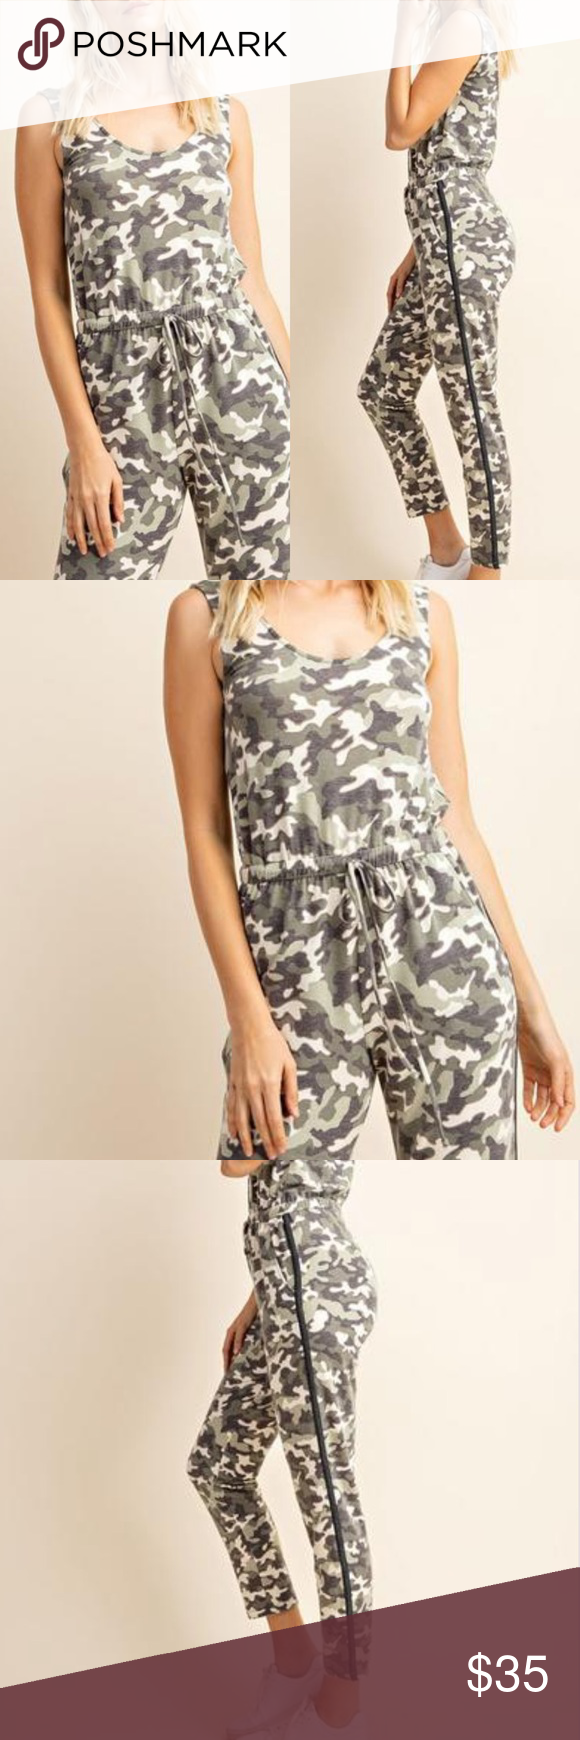 Camo Jumpsuit Super cute Camo jumpsuit. Size medium. Fits true to size. Has elastic waistband, scoop neck in front and back. Super comfy! Pants Jumpsuits & Rompers #myposhpicks